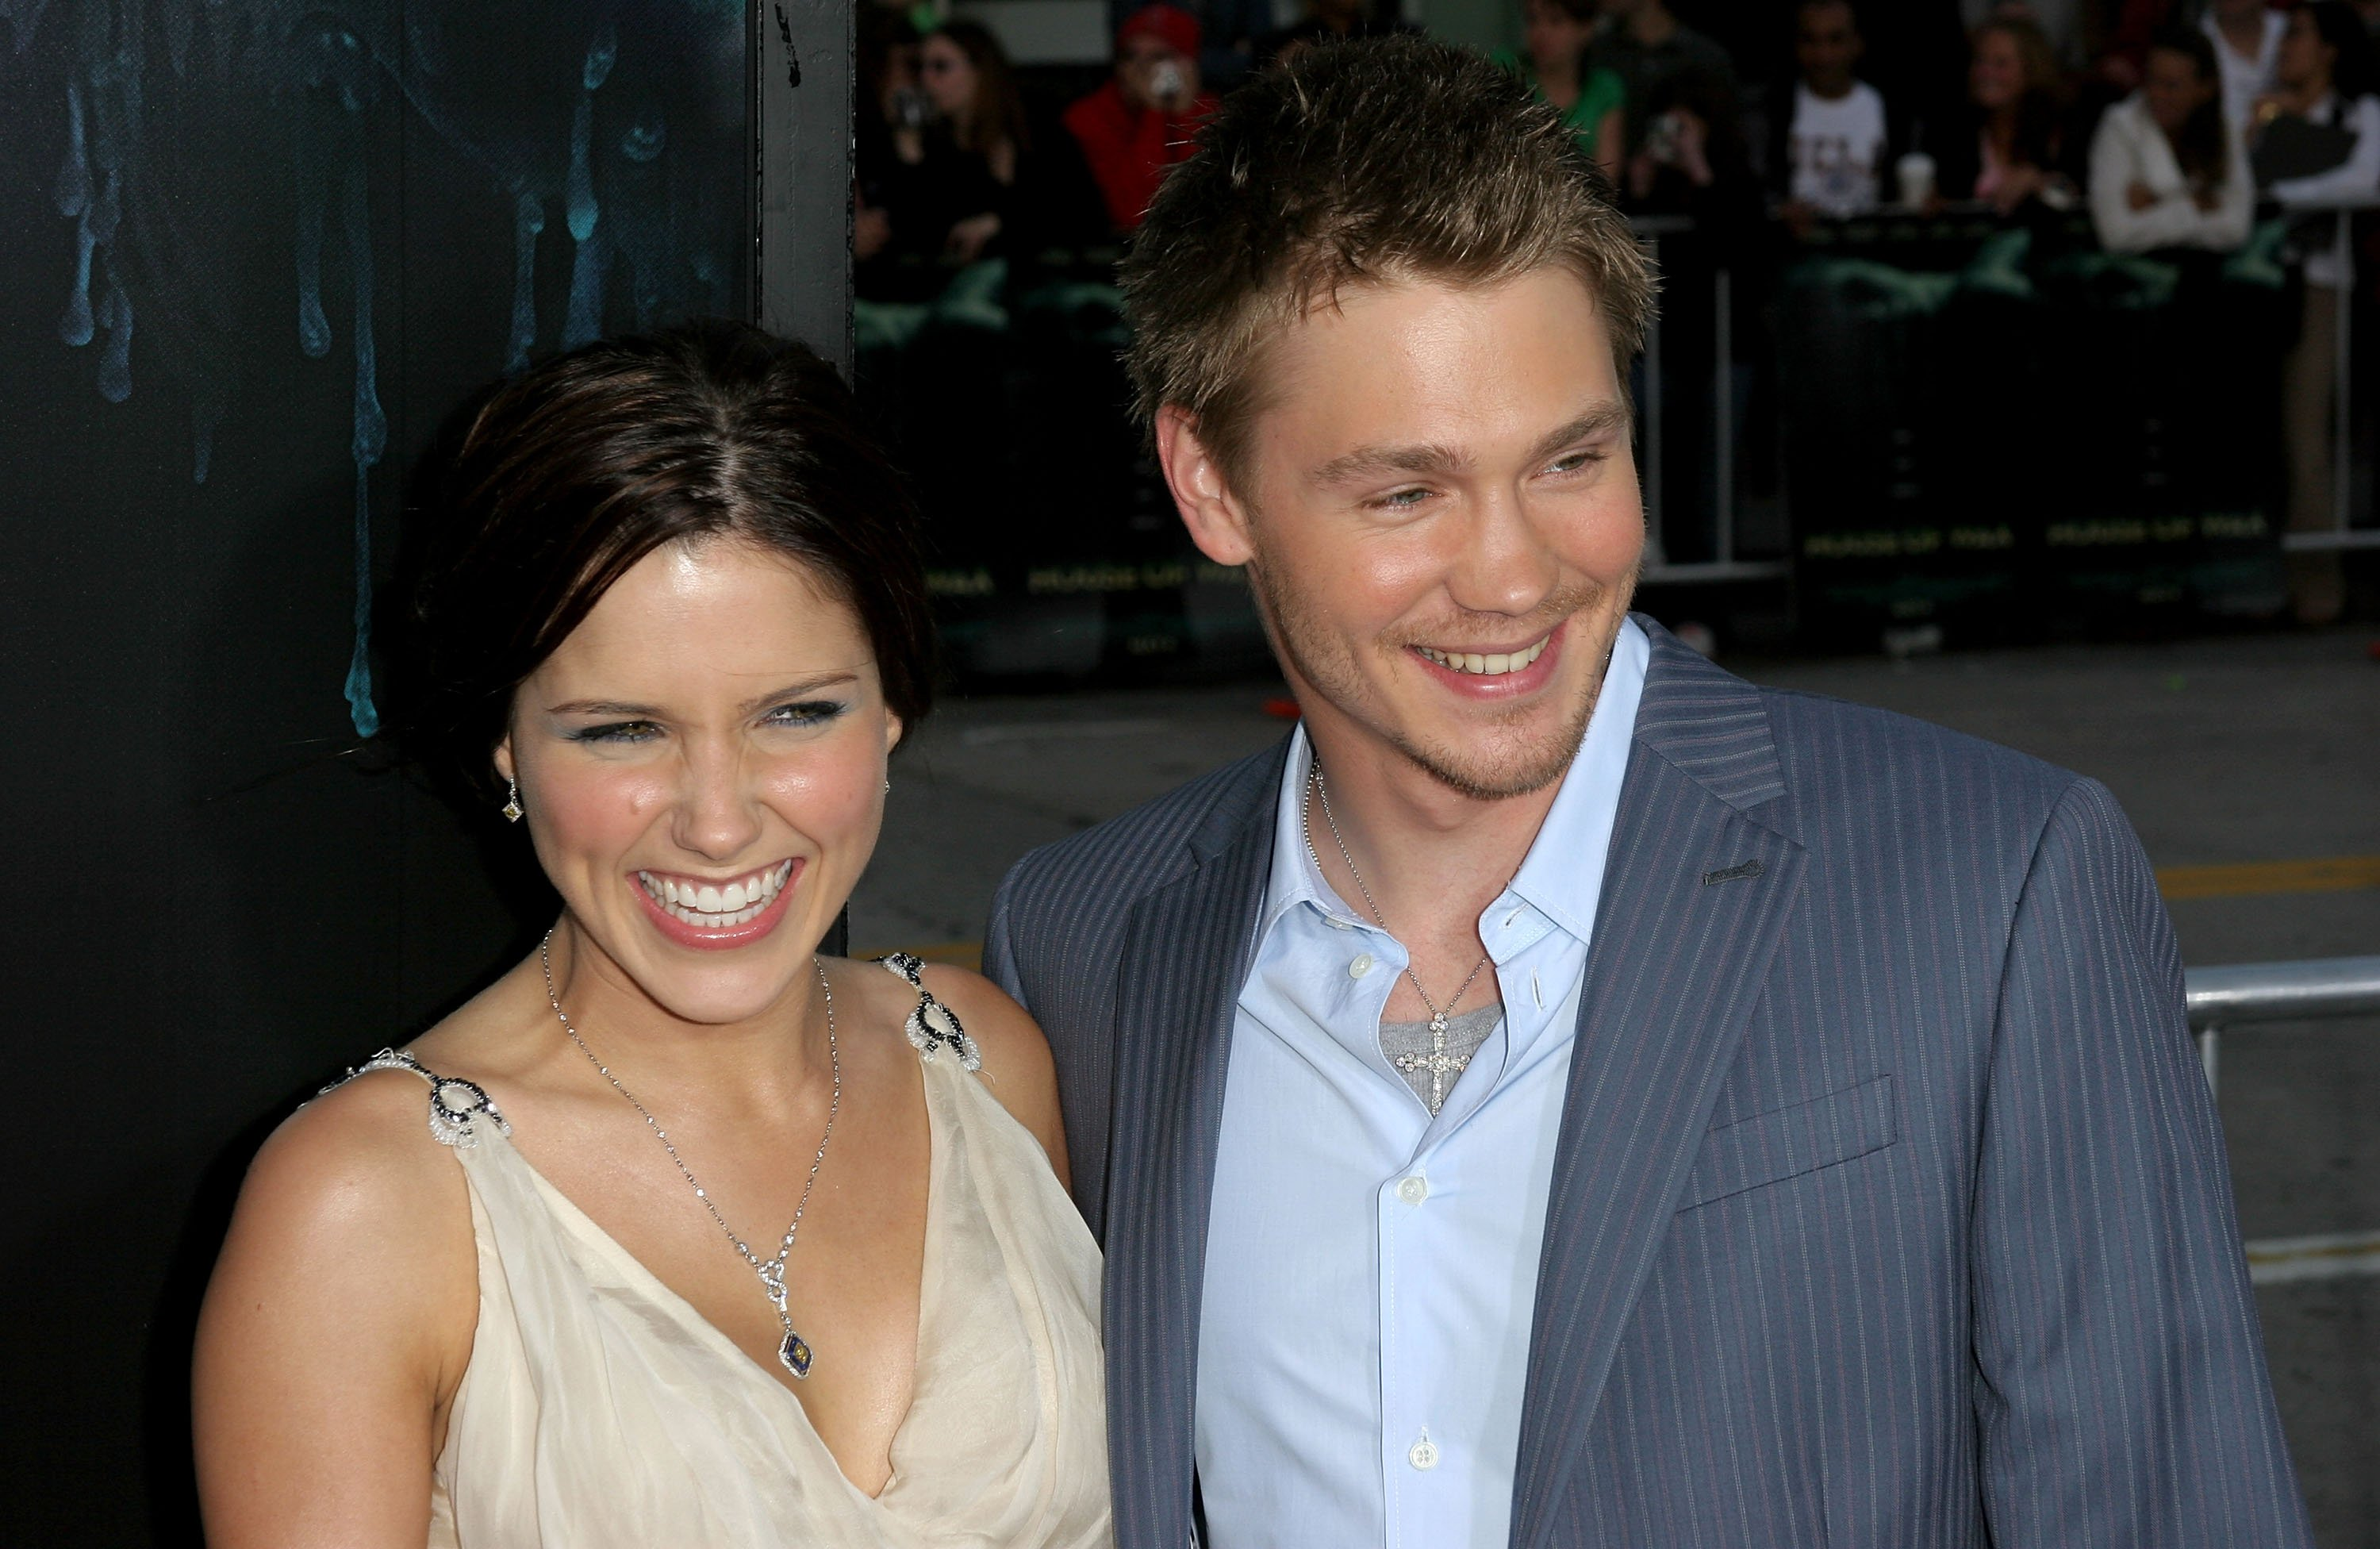 """Chad Michael Murray (R) and his wife actress Sophia Bush arrive at Warner Bros. Premiere Of """"House Of Wax"""" at the Mann's Village Theater on April 26, 2005, in Westwood, California.   Source: Getty Images."""